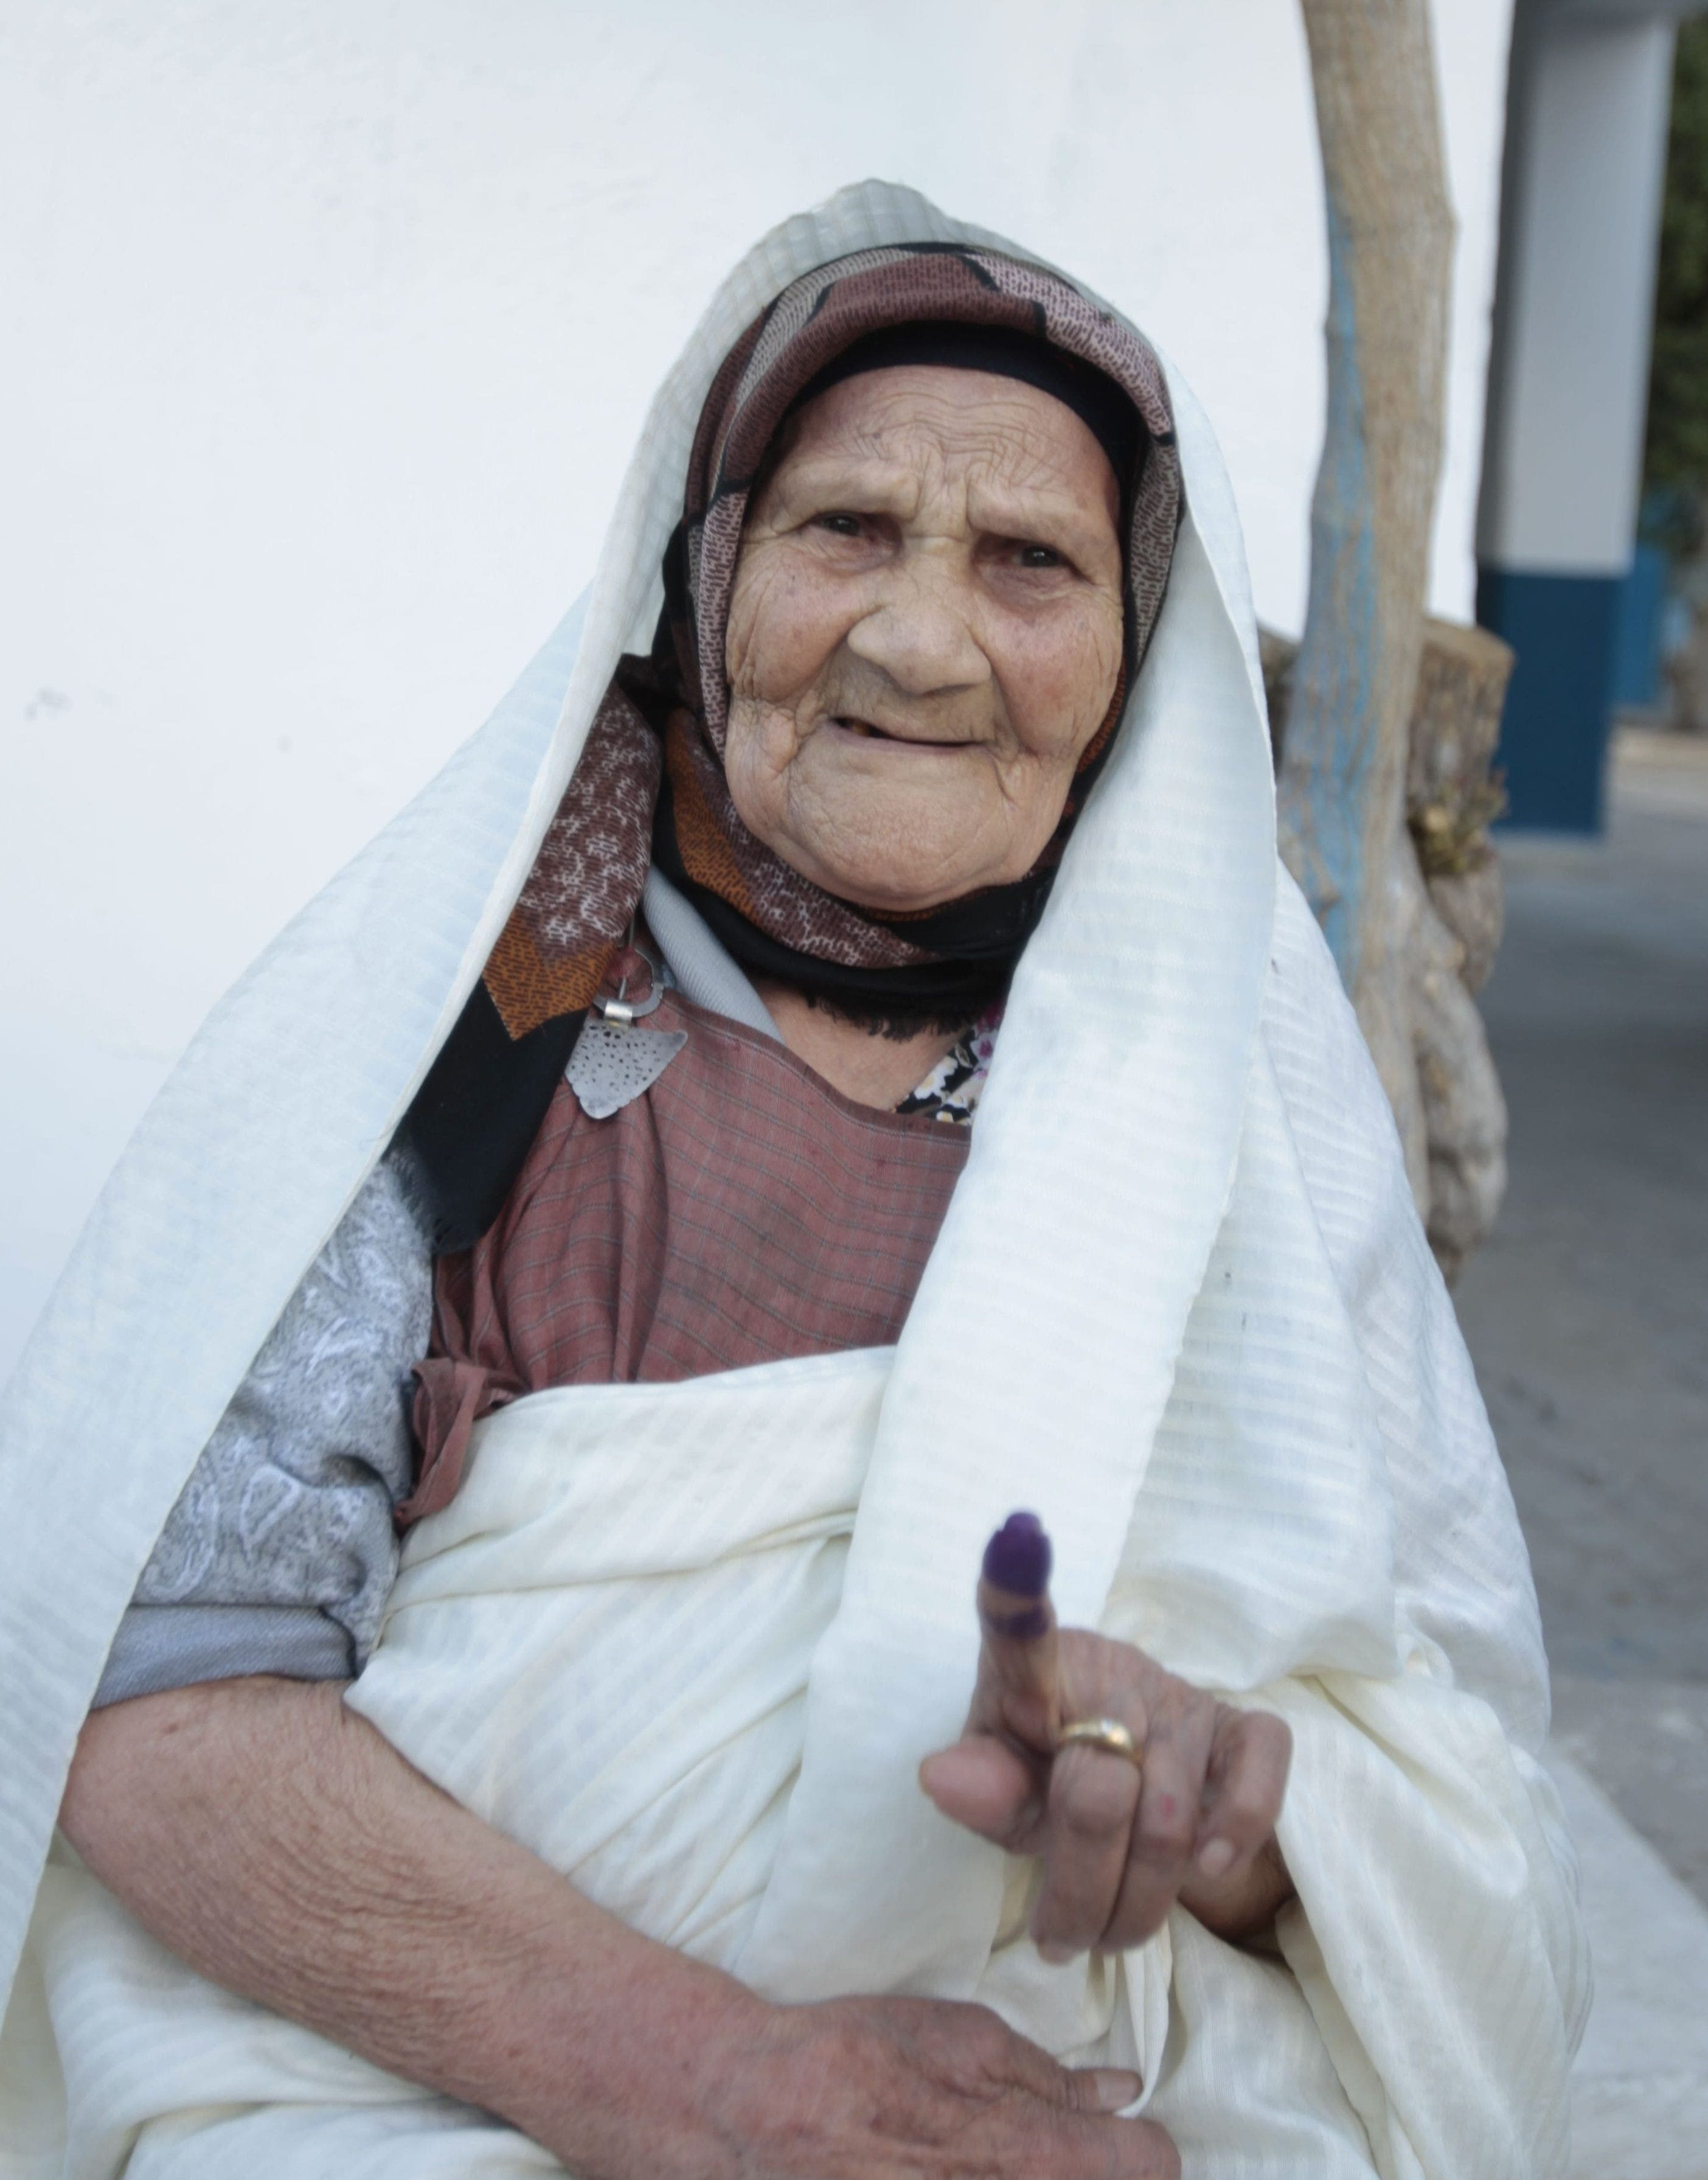 A voter raises her ink-stained finger after casting her vote at a polling station in Tunis October 26, 2014.